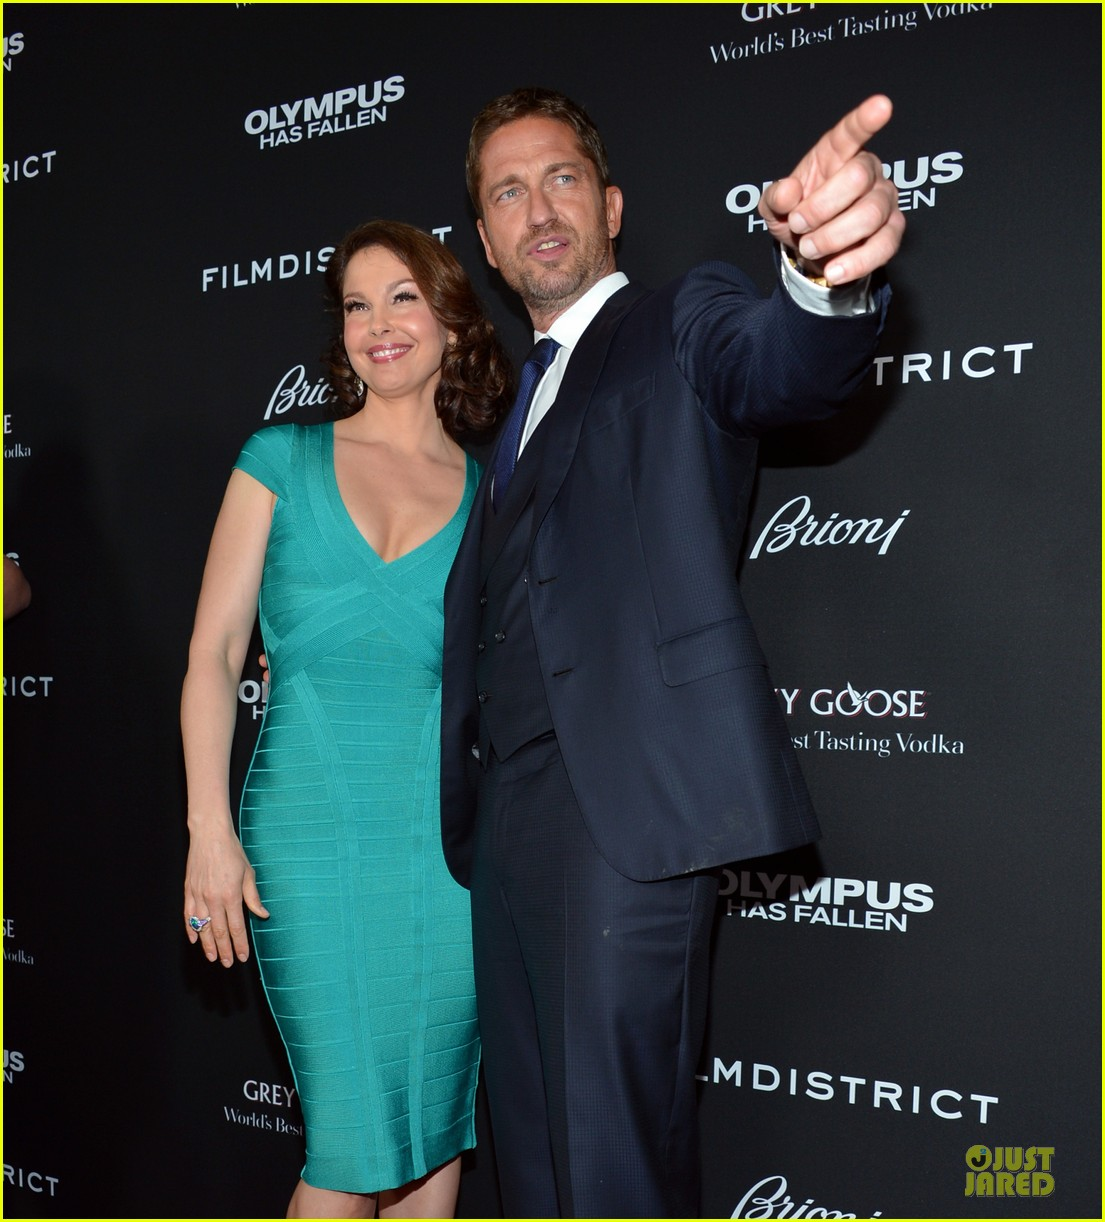 gerard butler olympic has fallen hollywood premiere 16